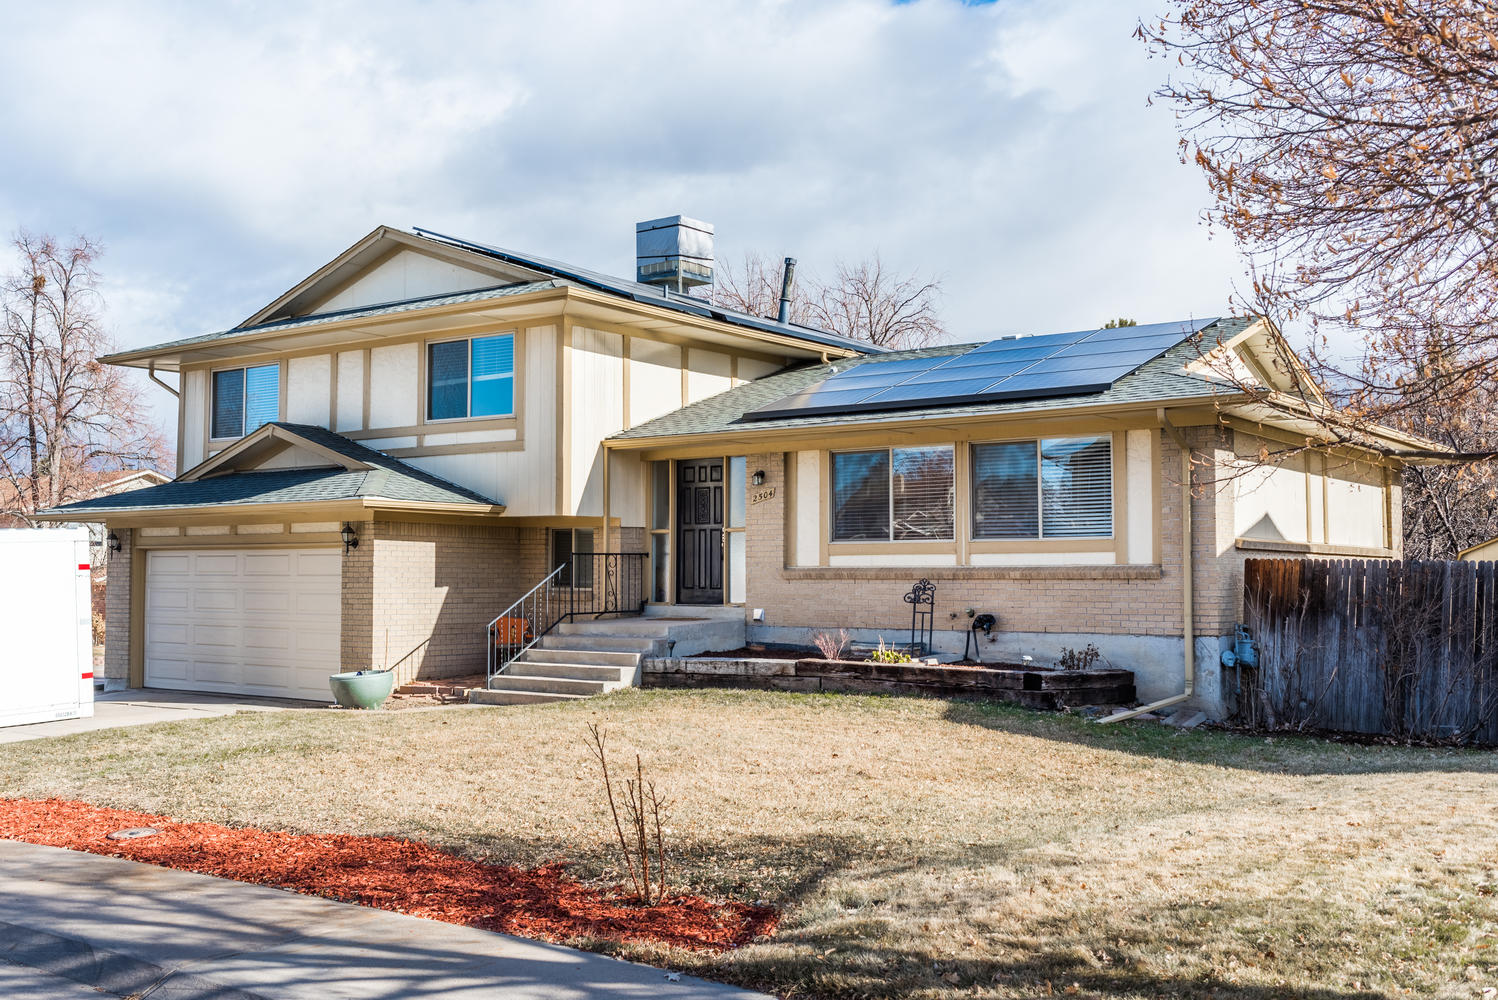 Single Family Home for Active at A large corner lot allows plenty of room in the front yard or a beautiful garden 2504 S Pagosa Ct Aurora, Colorado 80013 United States